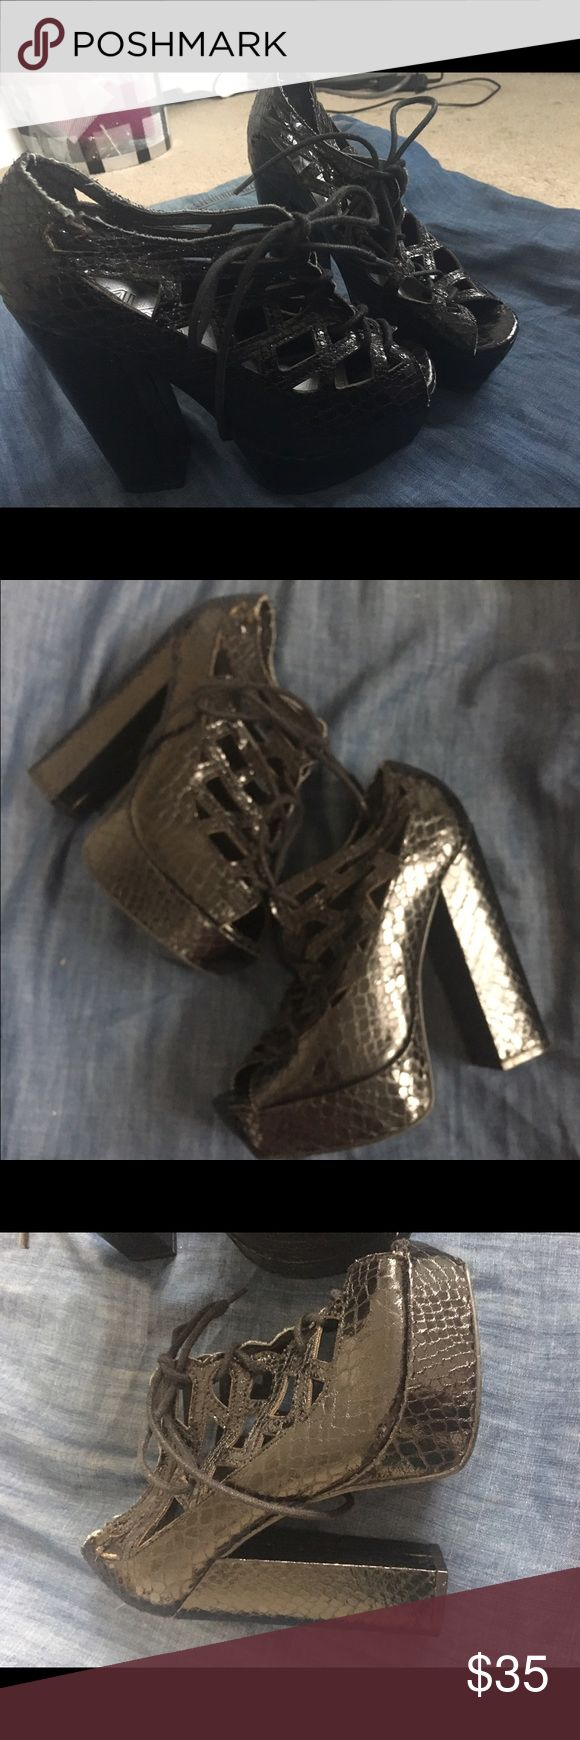 Black cutout strapon platform sandals with ties Super cute got at a discount from Macy's because of the slightly frayed strap but normally priced 85, got it for 45 and giving it to you for cheap ☺️. Has cute snakeskin print MIA Shoes Platforms